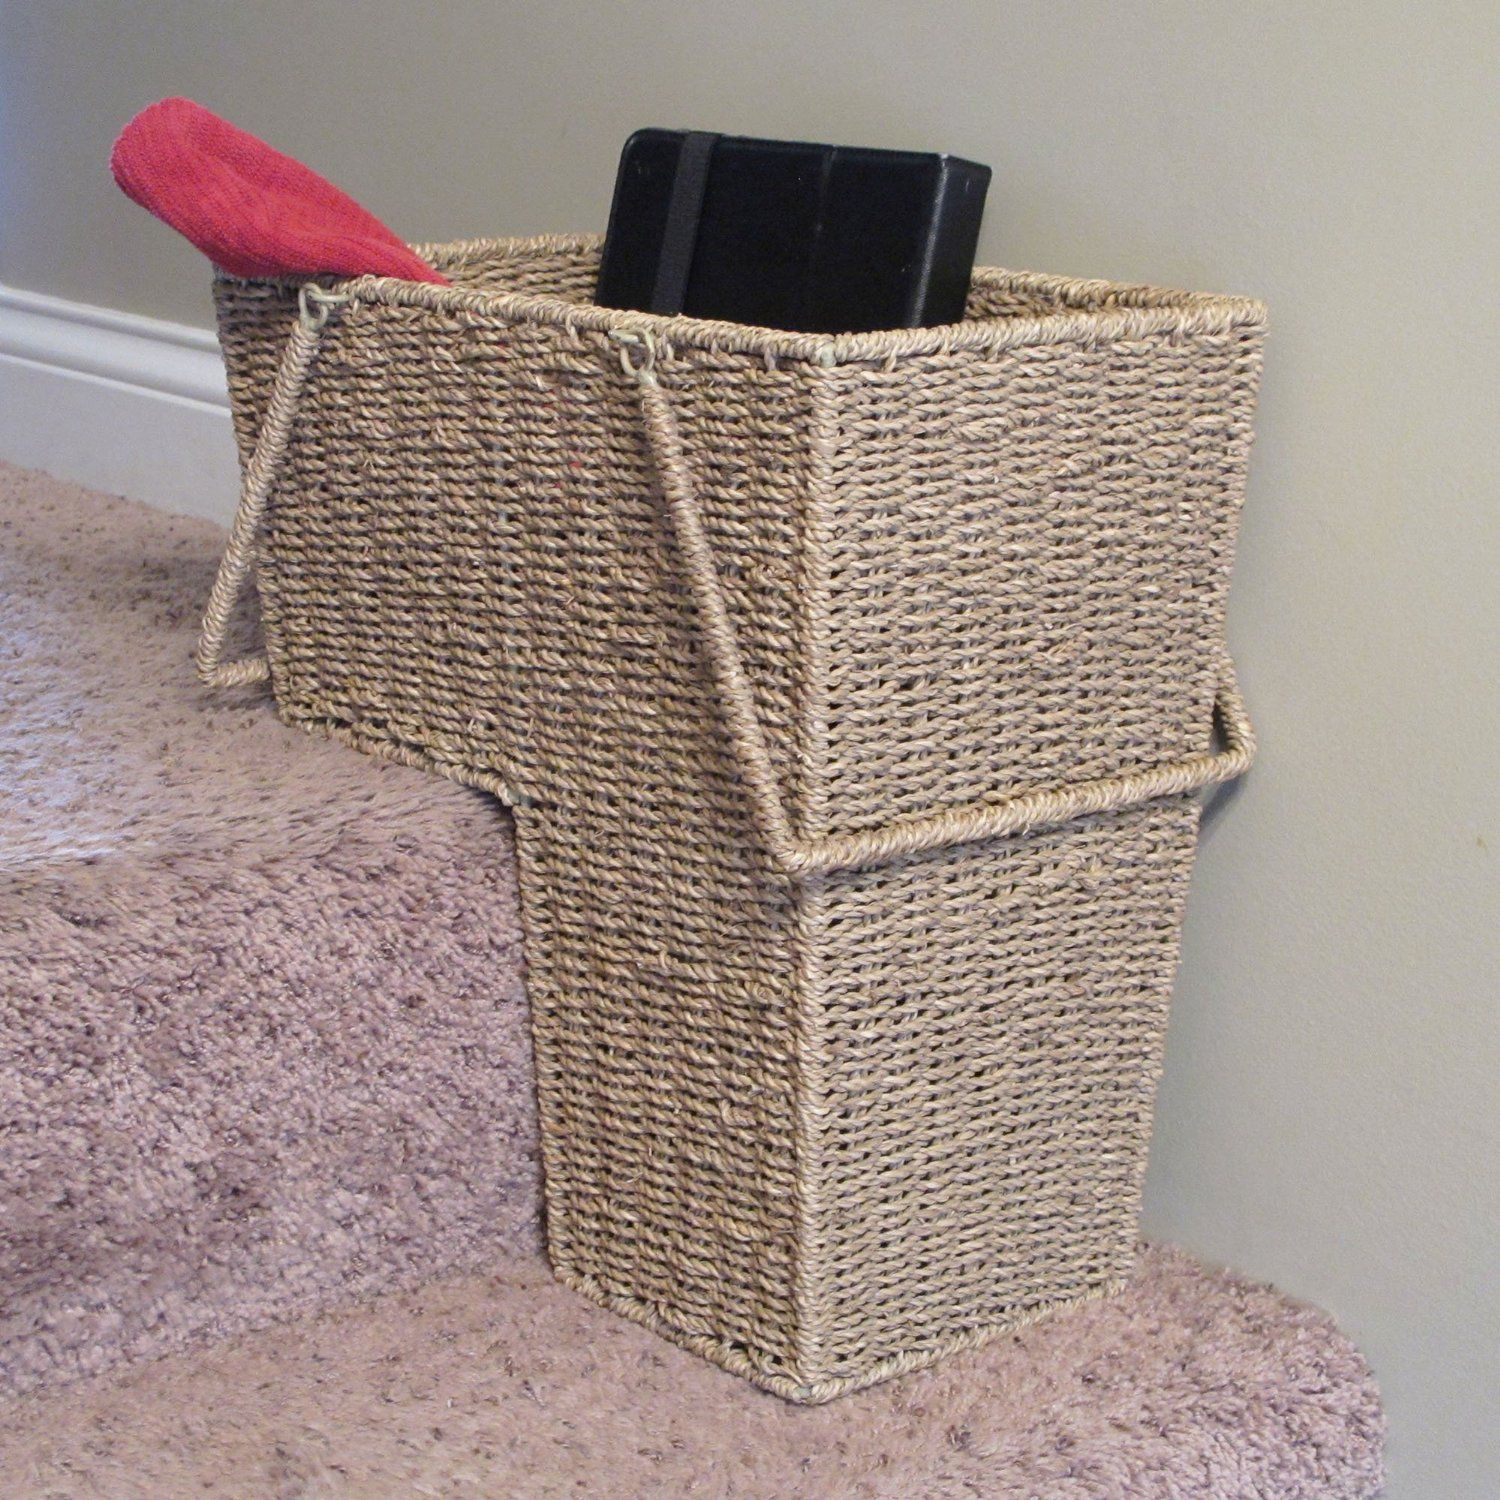 Amazon.com   Household Essentials Seagrass Stair Basket With Handle   Home Storage  Baskets